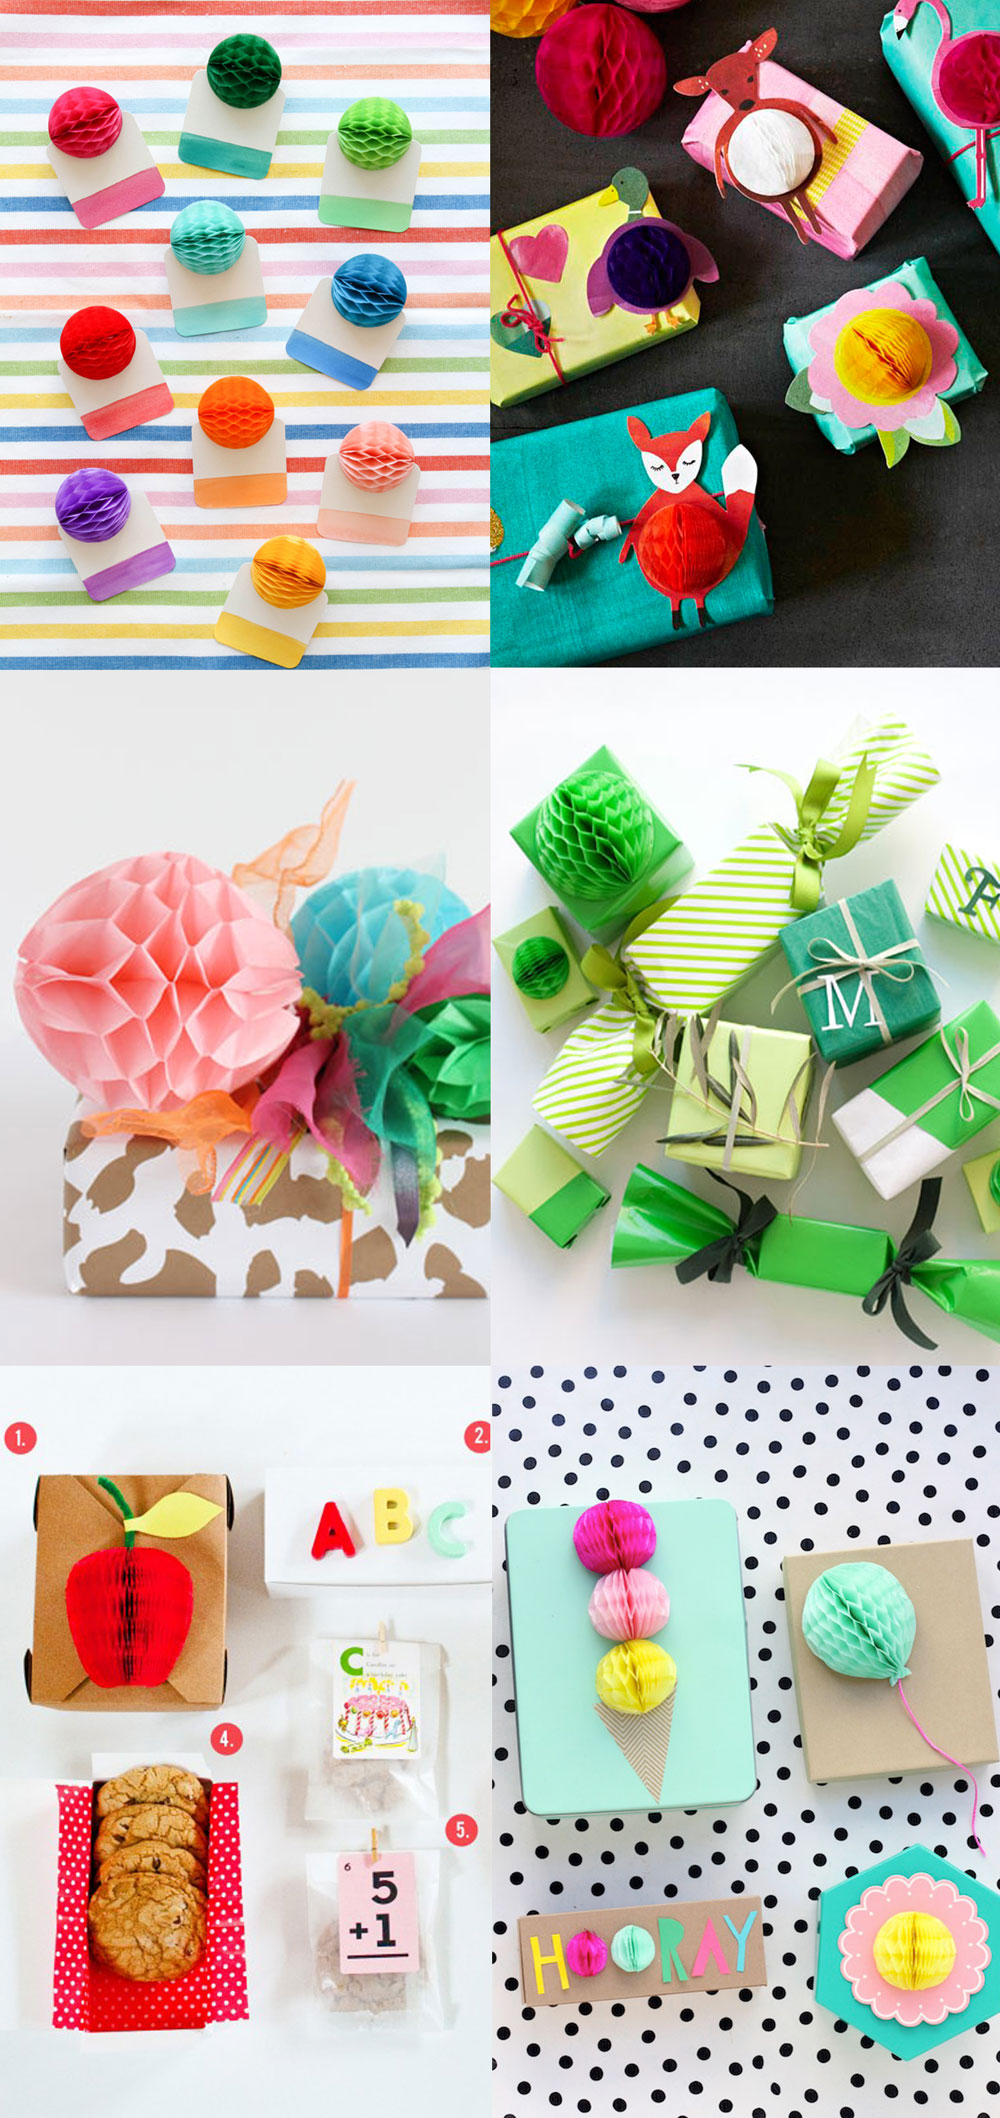 Wrapping-ideas-with-honeycomb-balls